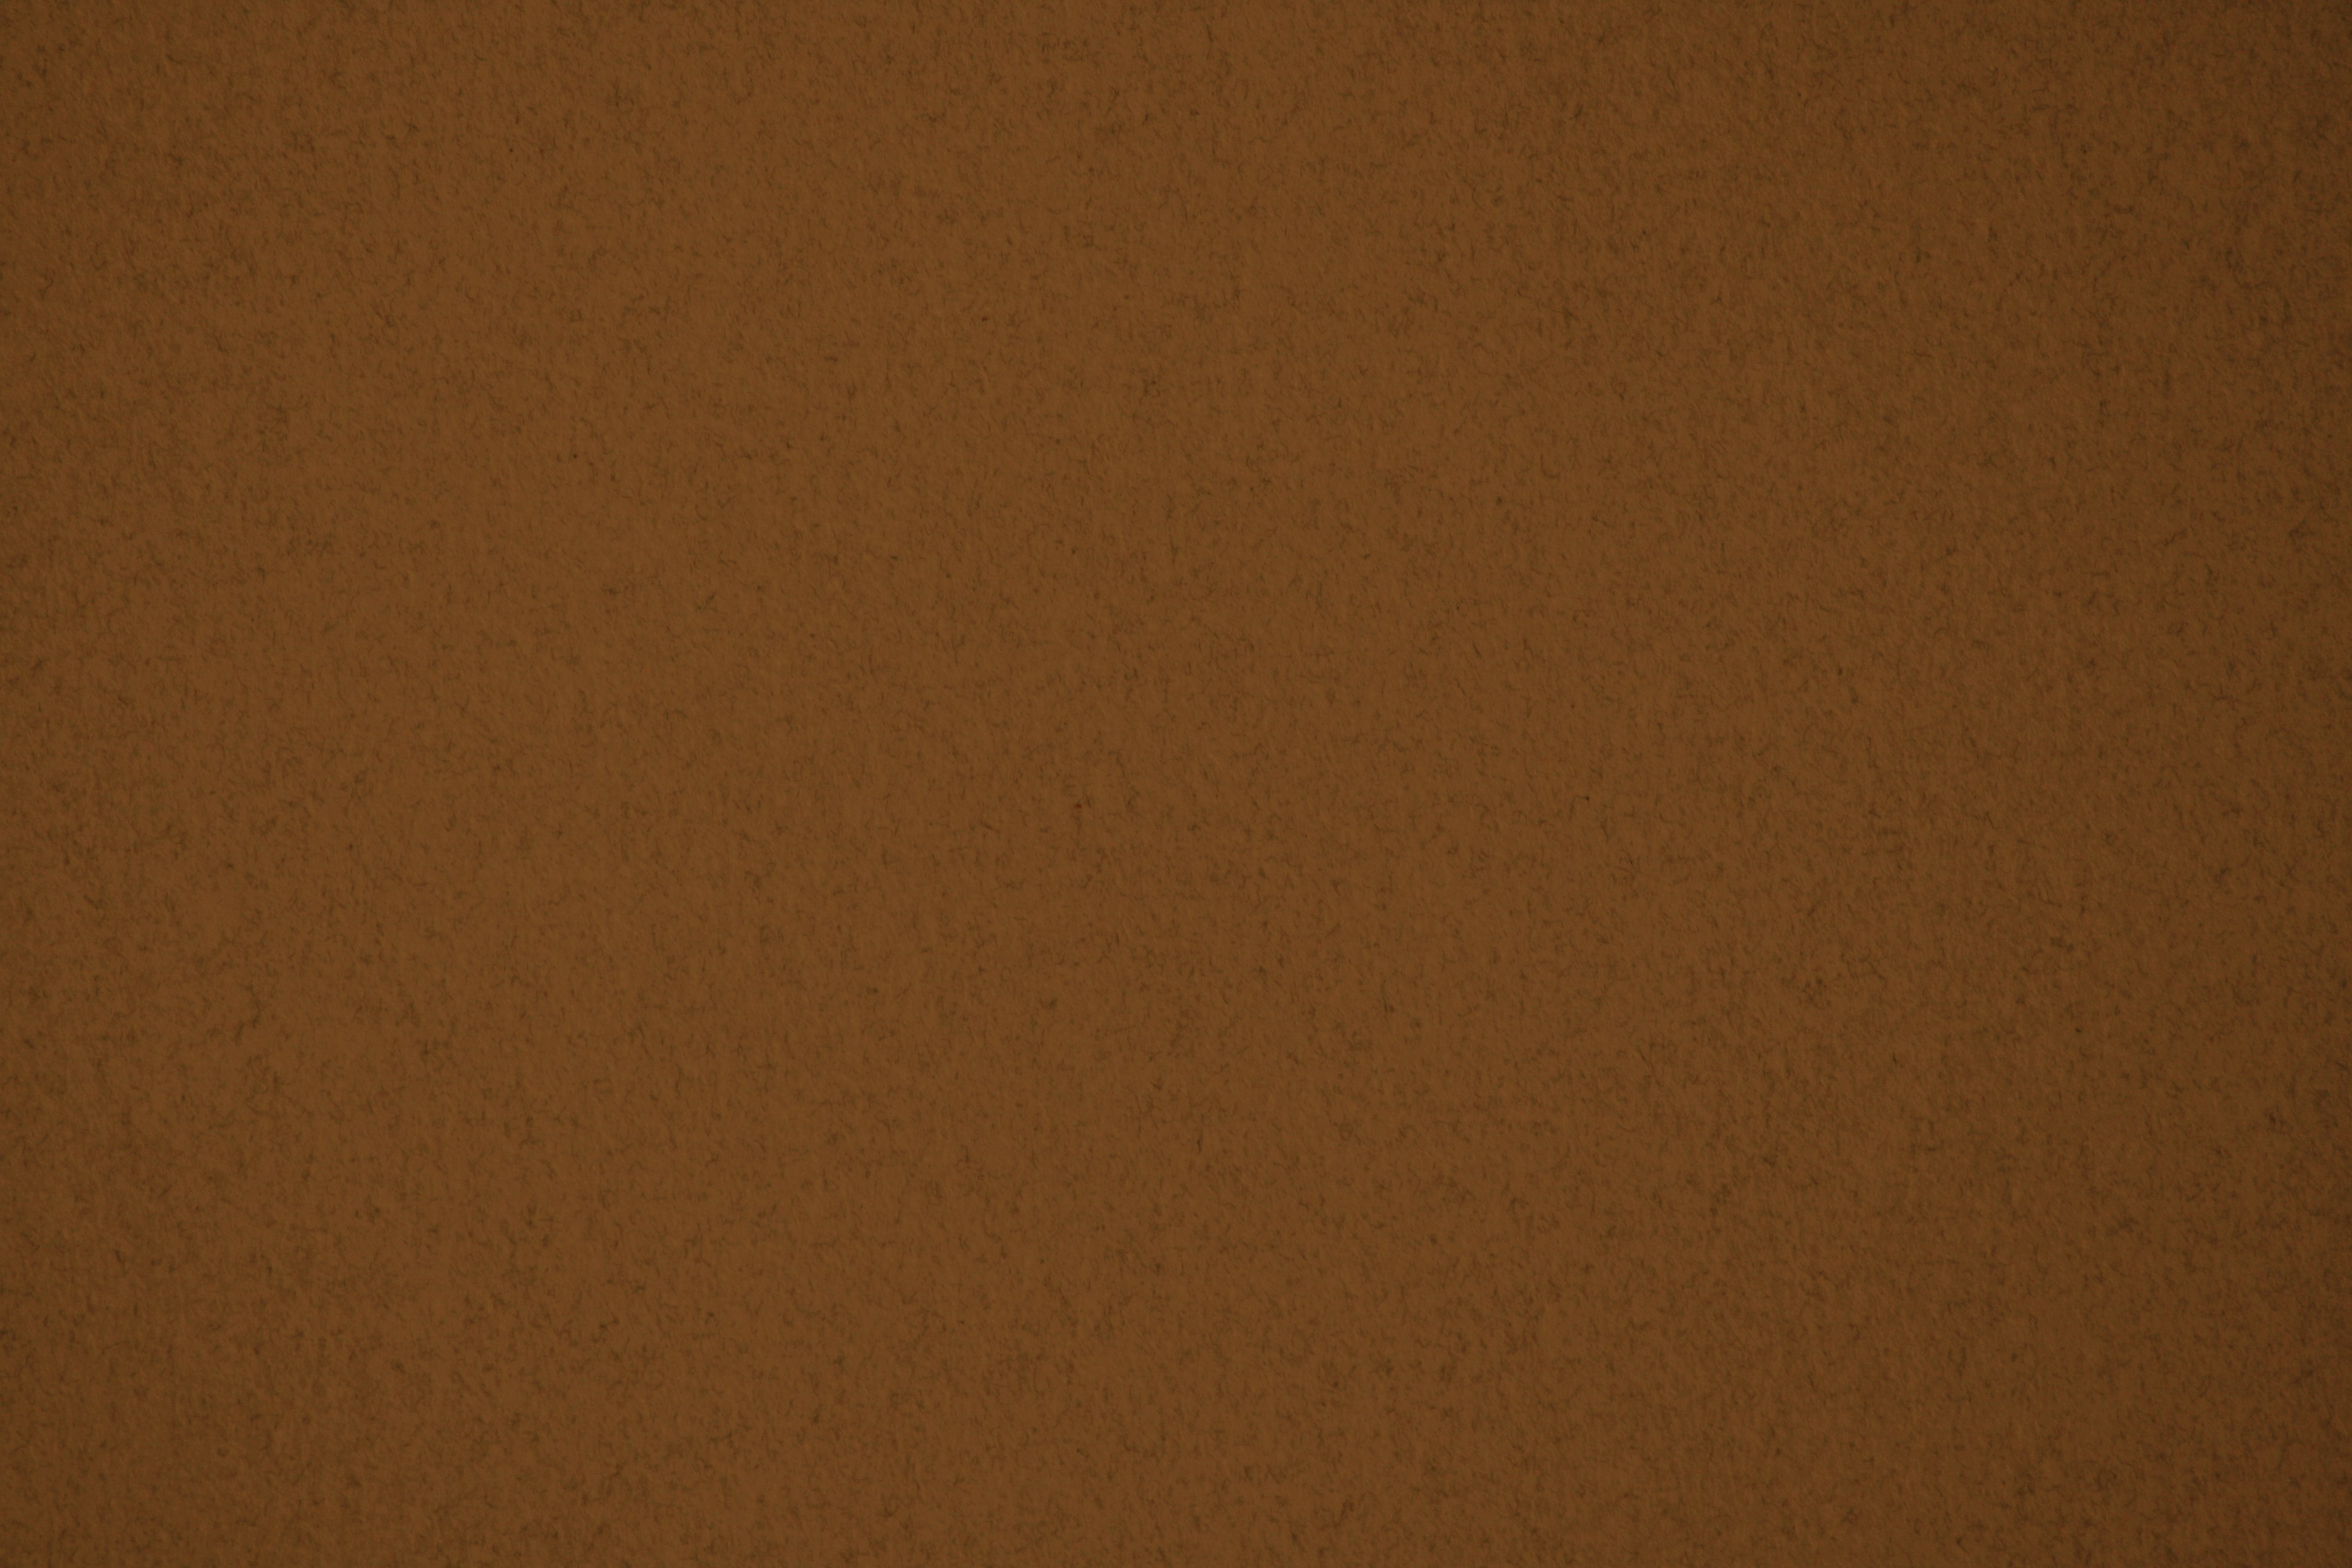 Golden Brown Speckled Paper Texture - Free High Resolution Photo    Brown Paper Texture